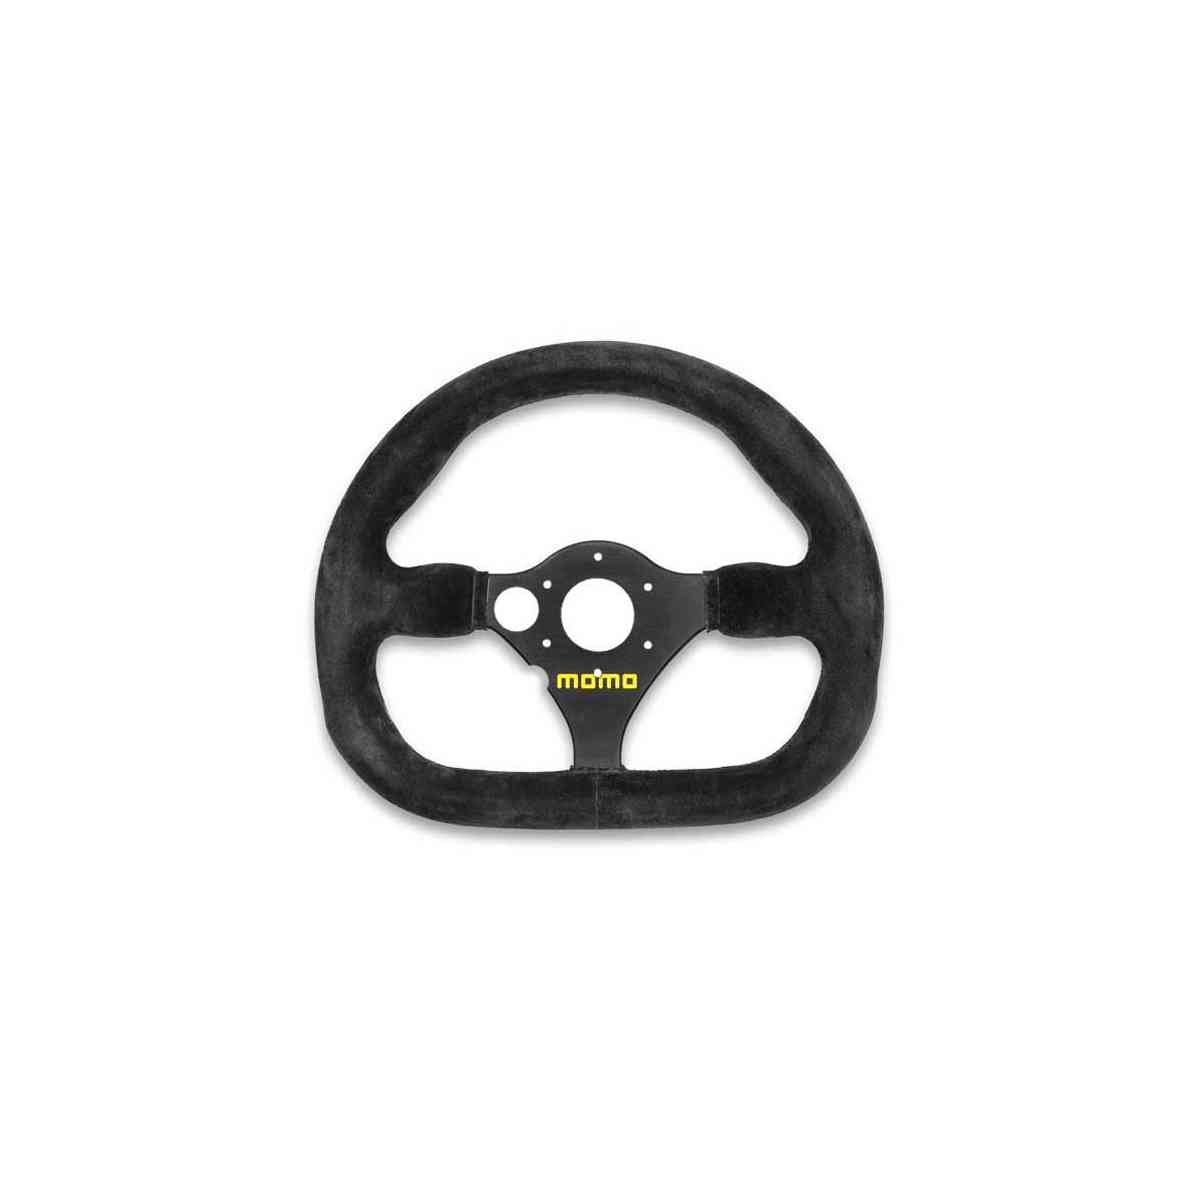 Momo MOD27D29 DIY Replacement Wheel for Thrustmaster - 290mm Suede